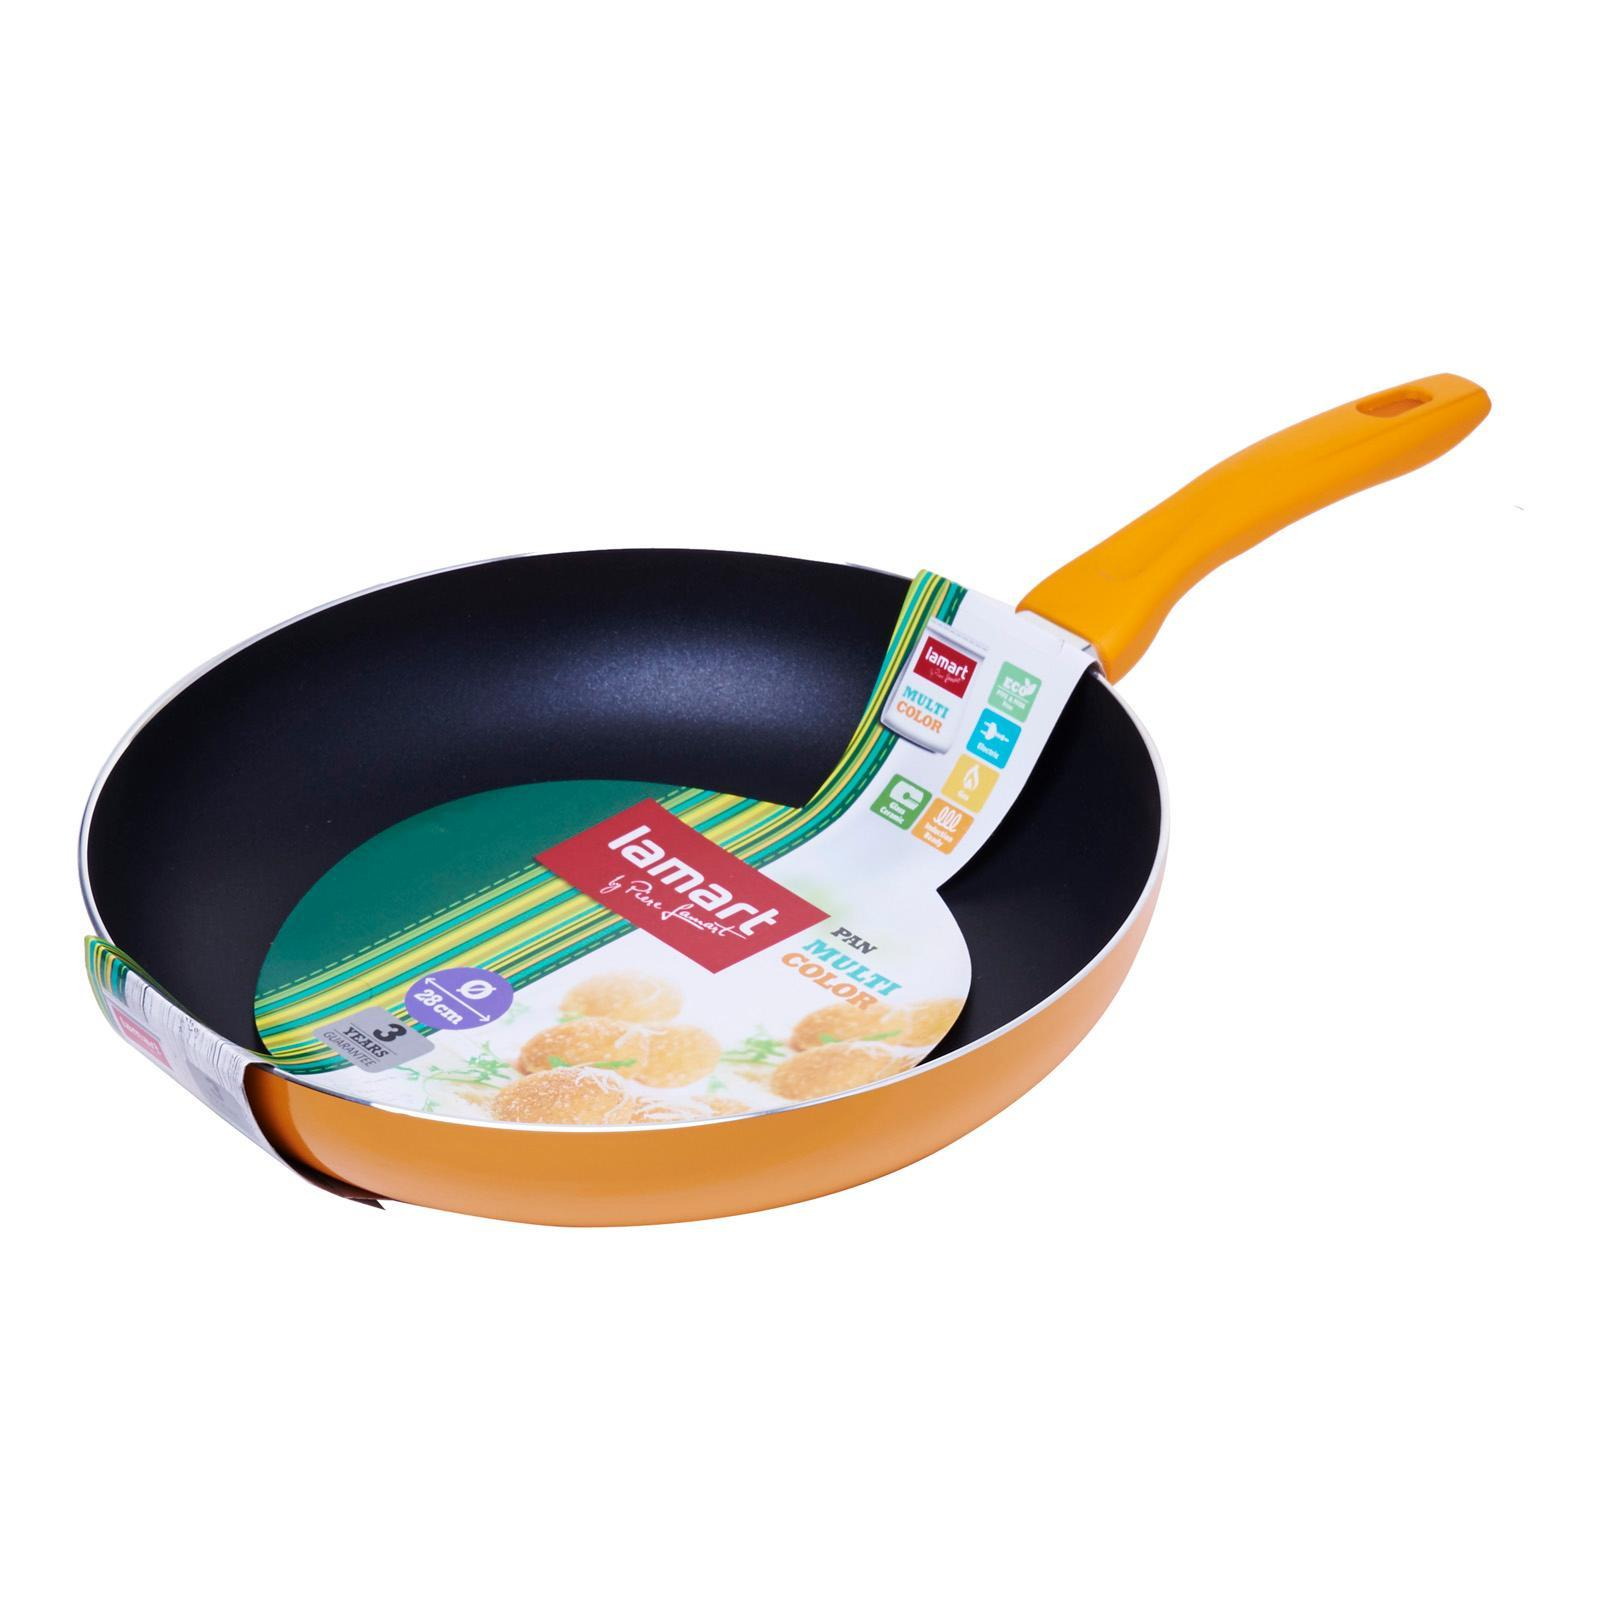 Lamart Induction Ready Non-Stick Fry Pan 28X5Cm